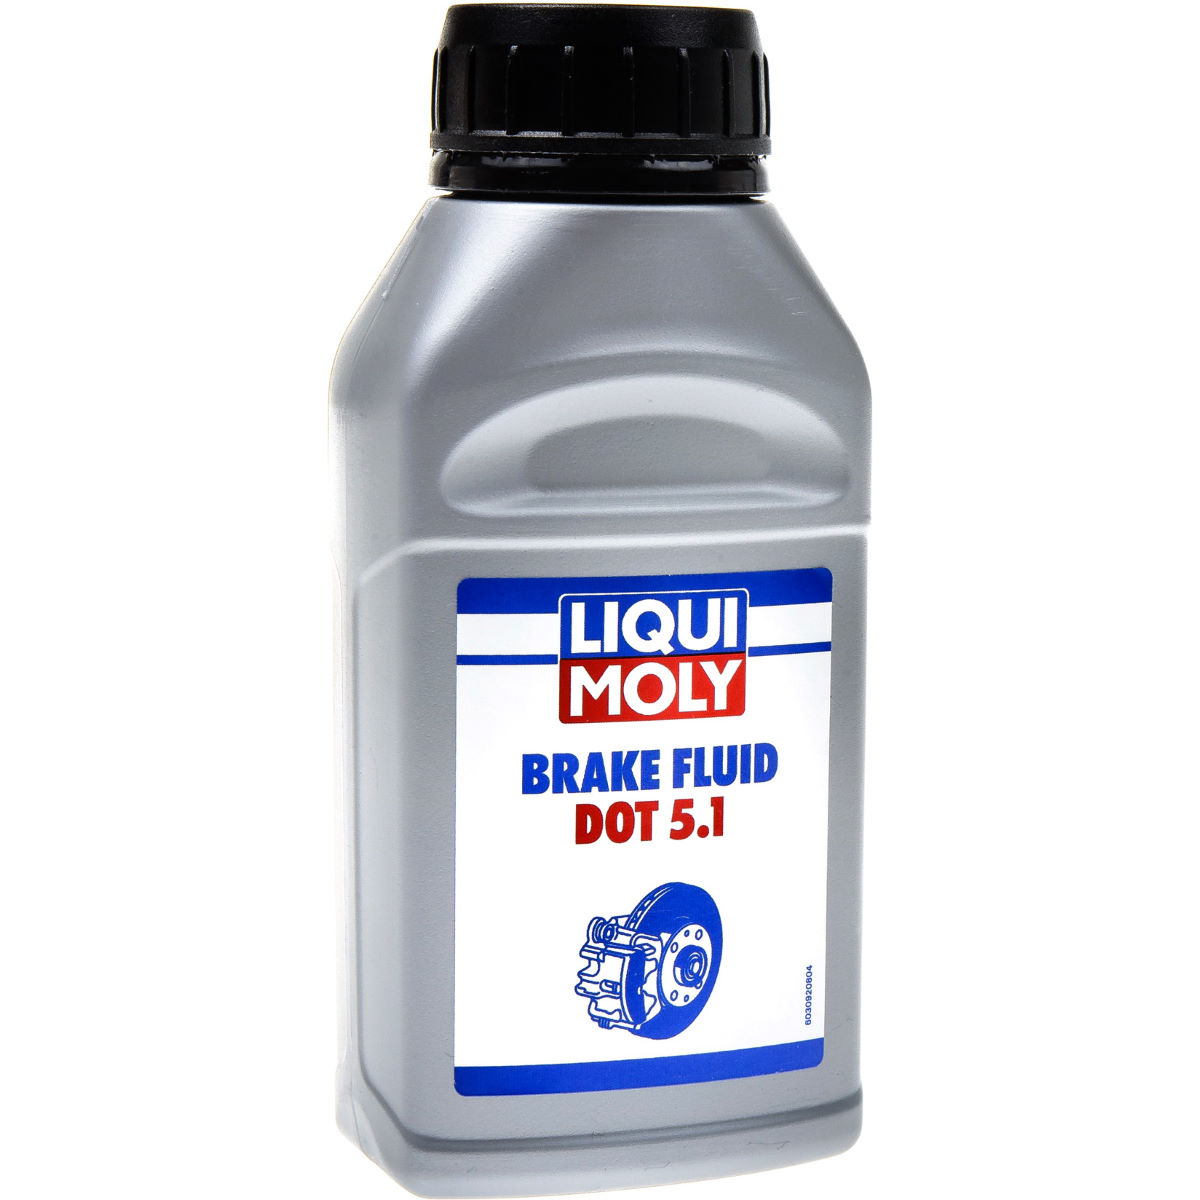 Bleed Kit Liqui Moly 250ml DOT 5.1 Brake Fluid - Aceites de freno